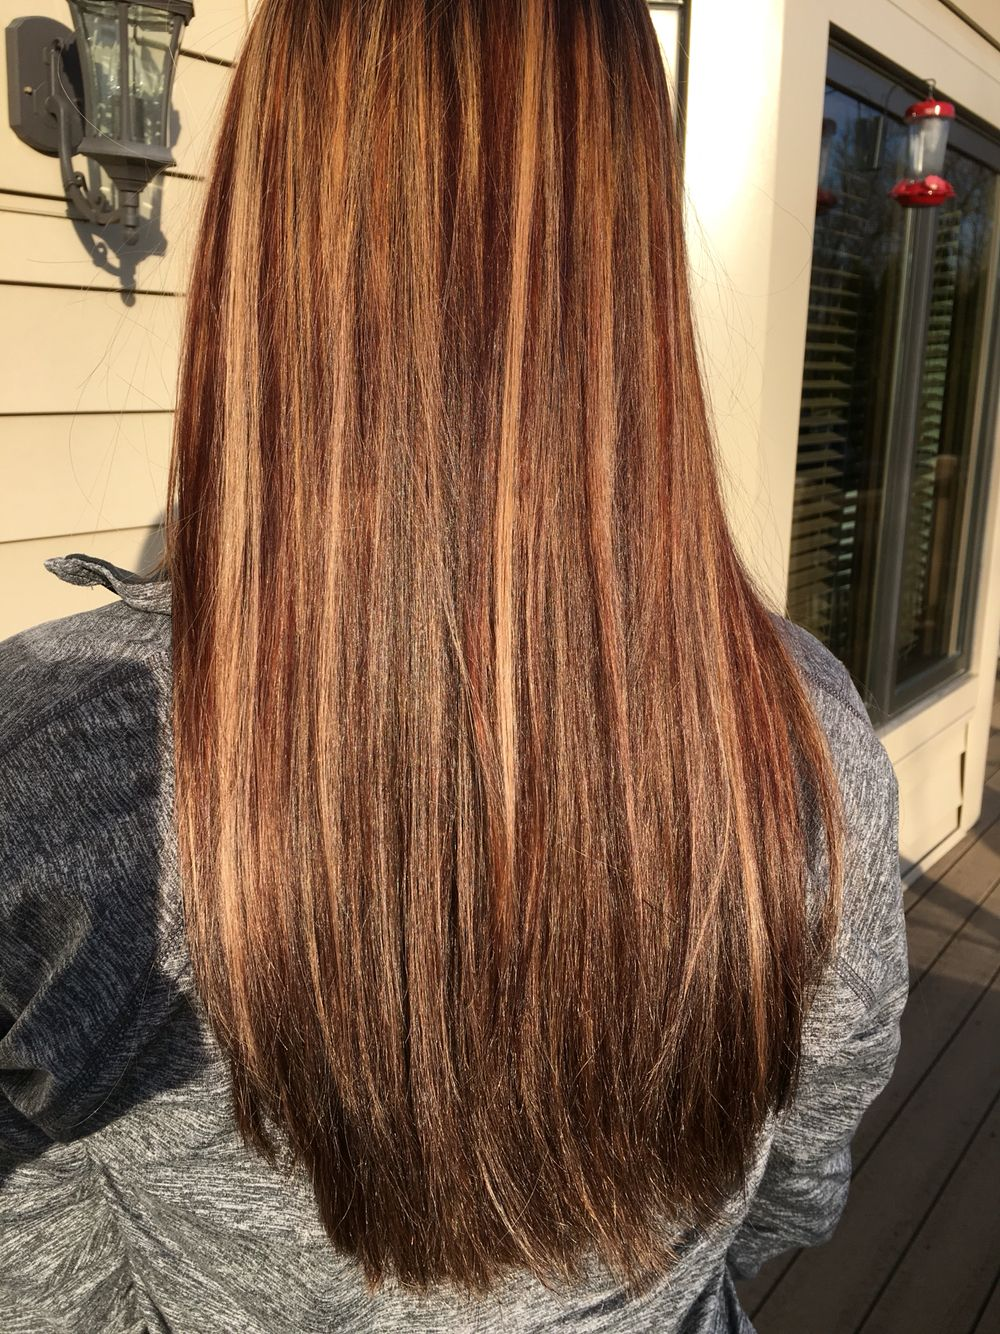 Copper Warm Brown And A Few Caramel Highlights To Start Off The New Year Right Perfect For Winter Hair Brunette Hair Color Hair Styles